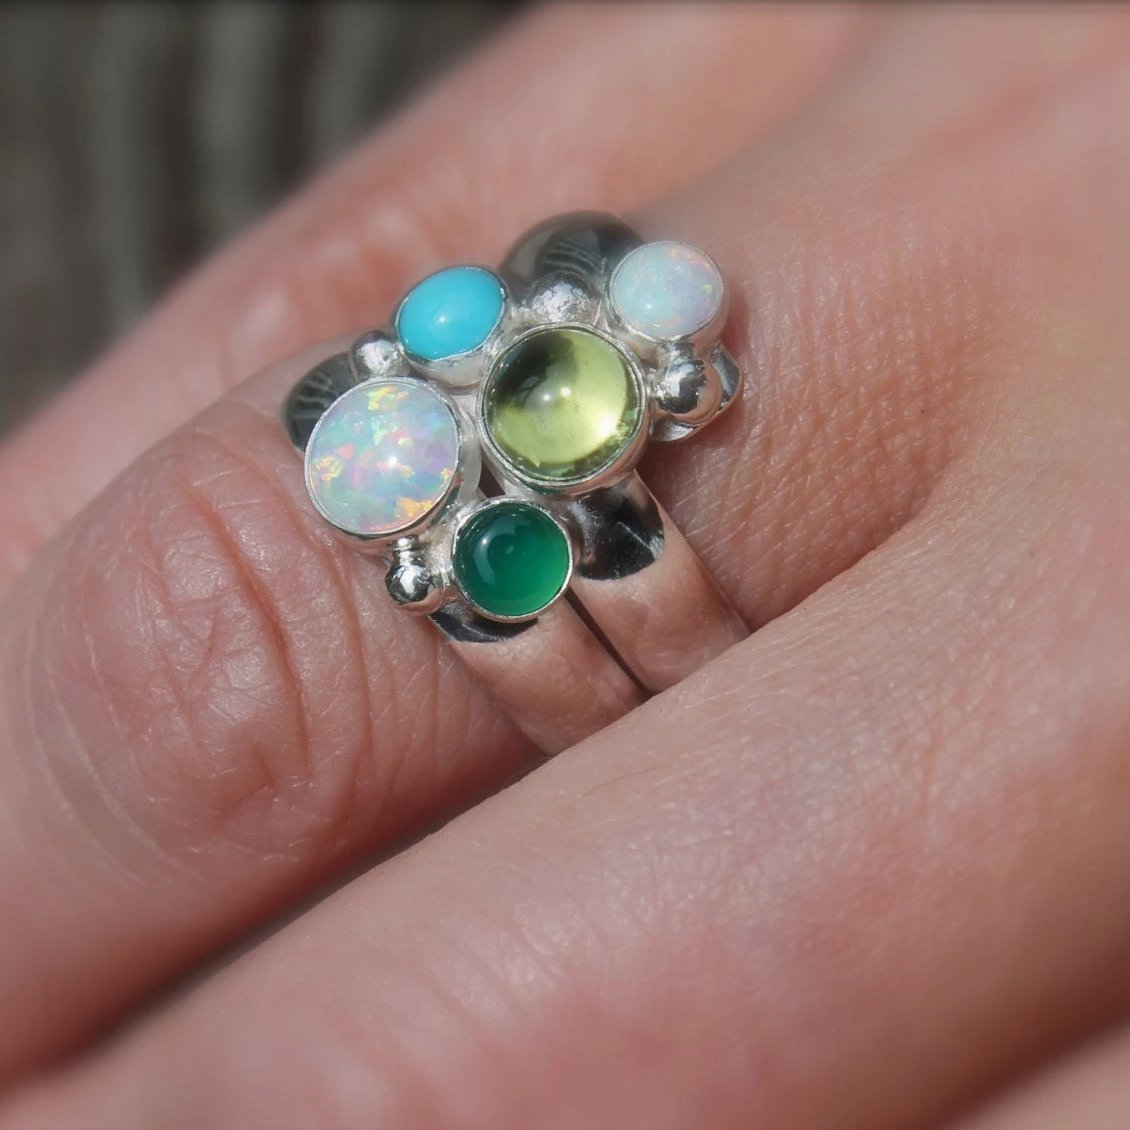 Graduated Sizes Birthstones Fairy Tale Ring in Silver